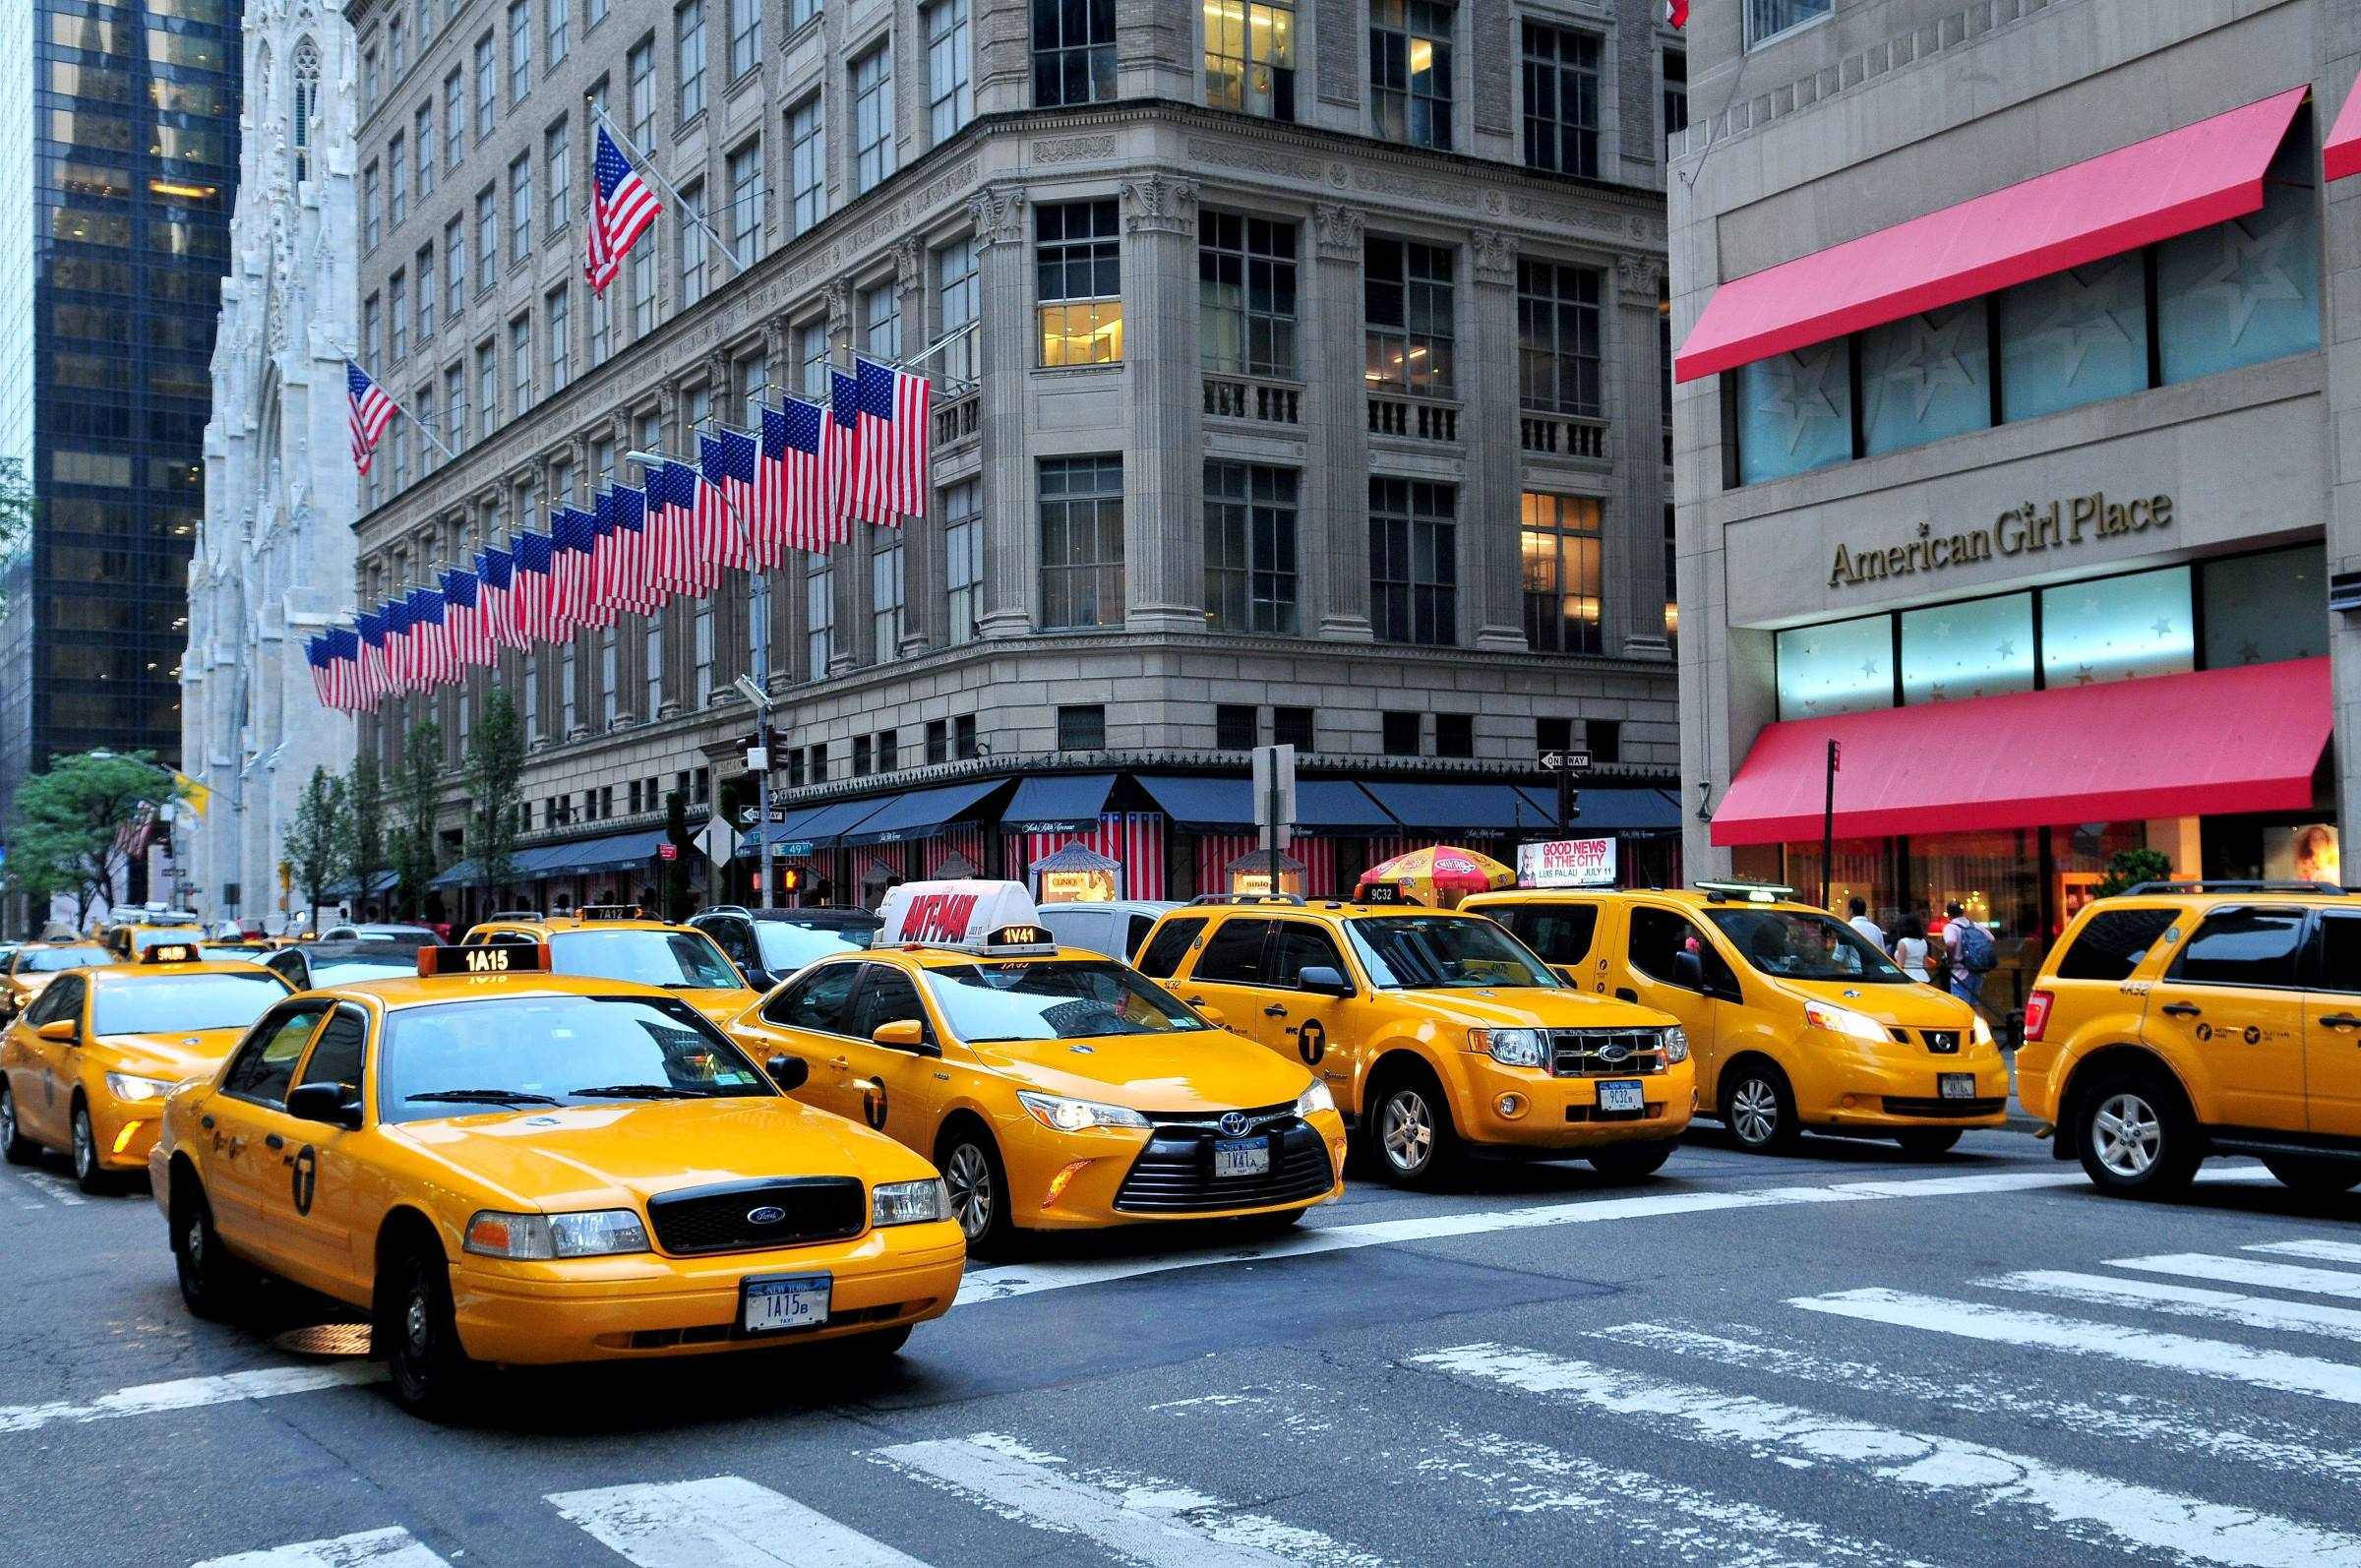 new york city yellow cabs 5th avenue